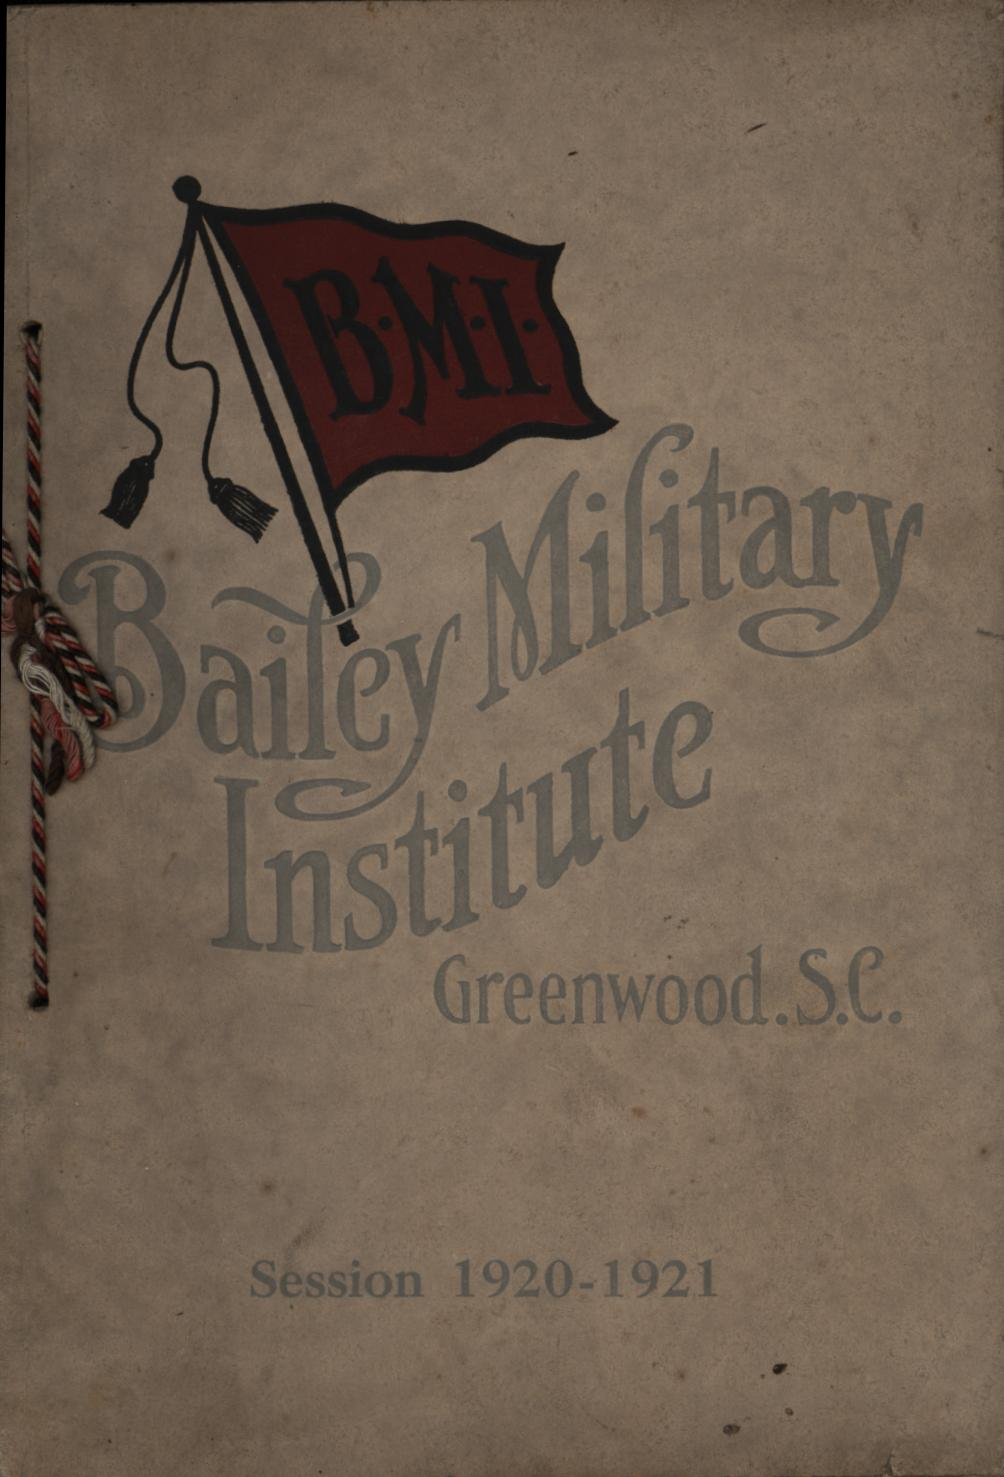 Image for Bailey Military Institute, Greenwood, South Carolina: Session 1920-1921 (First Edition)